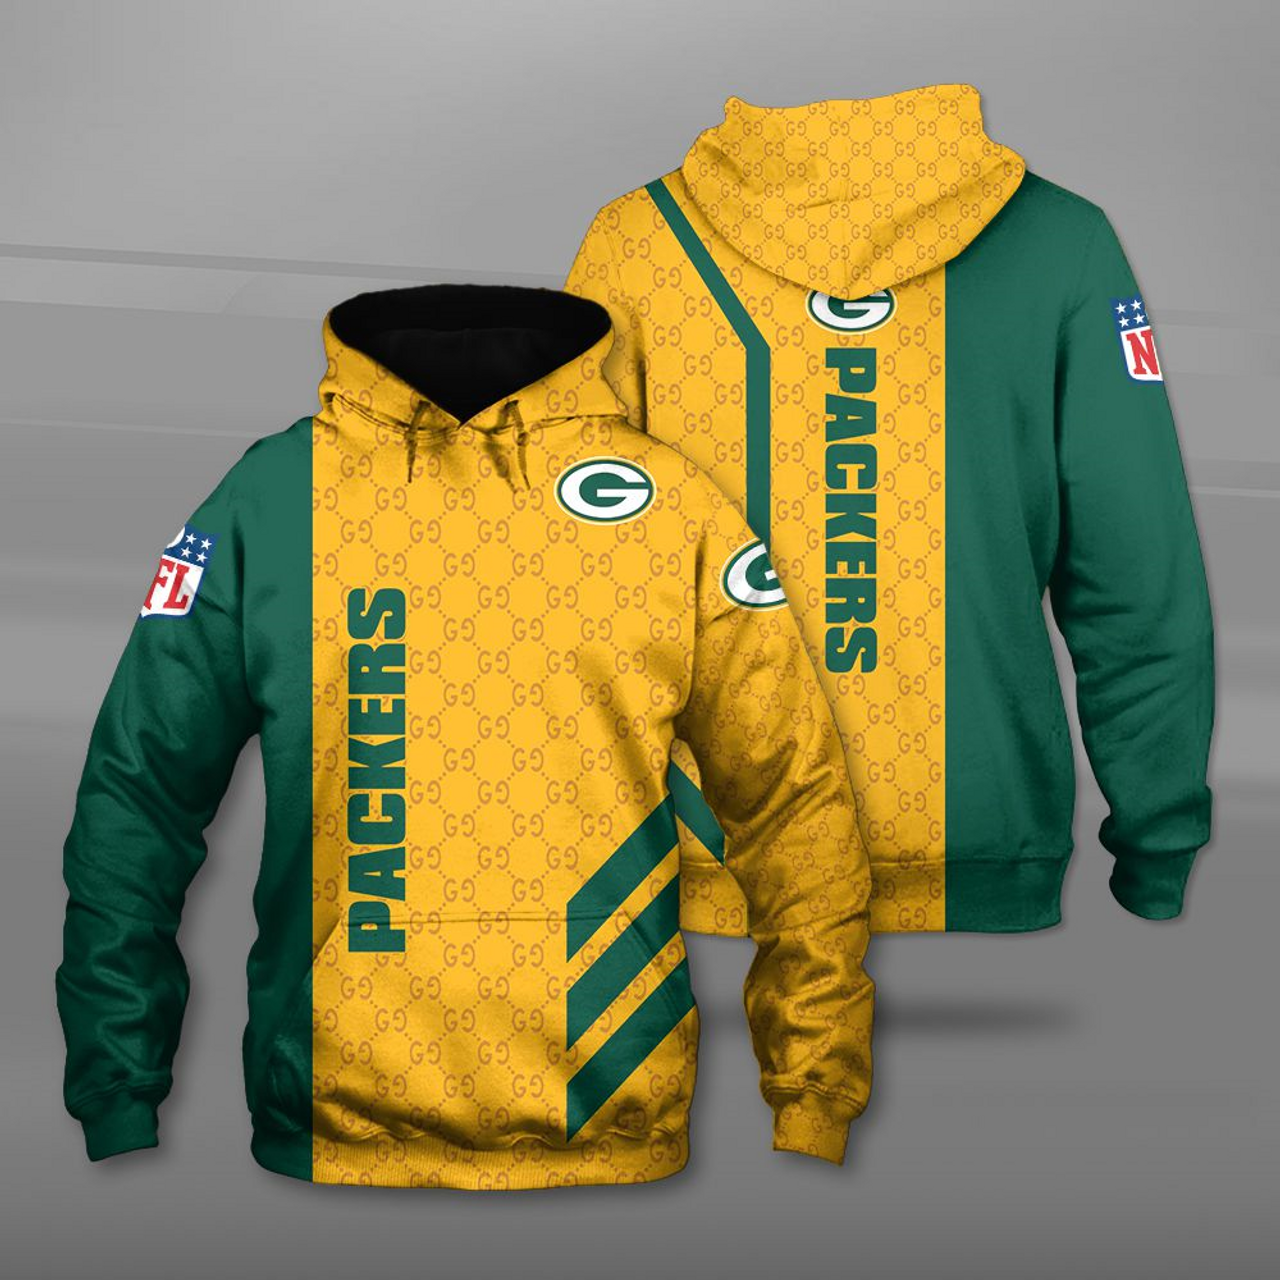 detailed look 72682 35445 **(OFFICIAL-N.F.L.GREEN-BAY-PACKERS-TEAM-GAME-DAY-PULLOVER-HOODIES/CUSTOM-3D-GRAPHIC-PRINTED-DETAILED-DOUBLE-SIDED-ALL-OVER/CLASSIC-OFFICIAL-PACKERS-L...